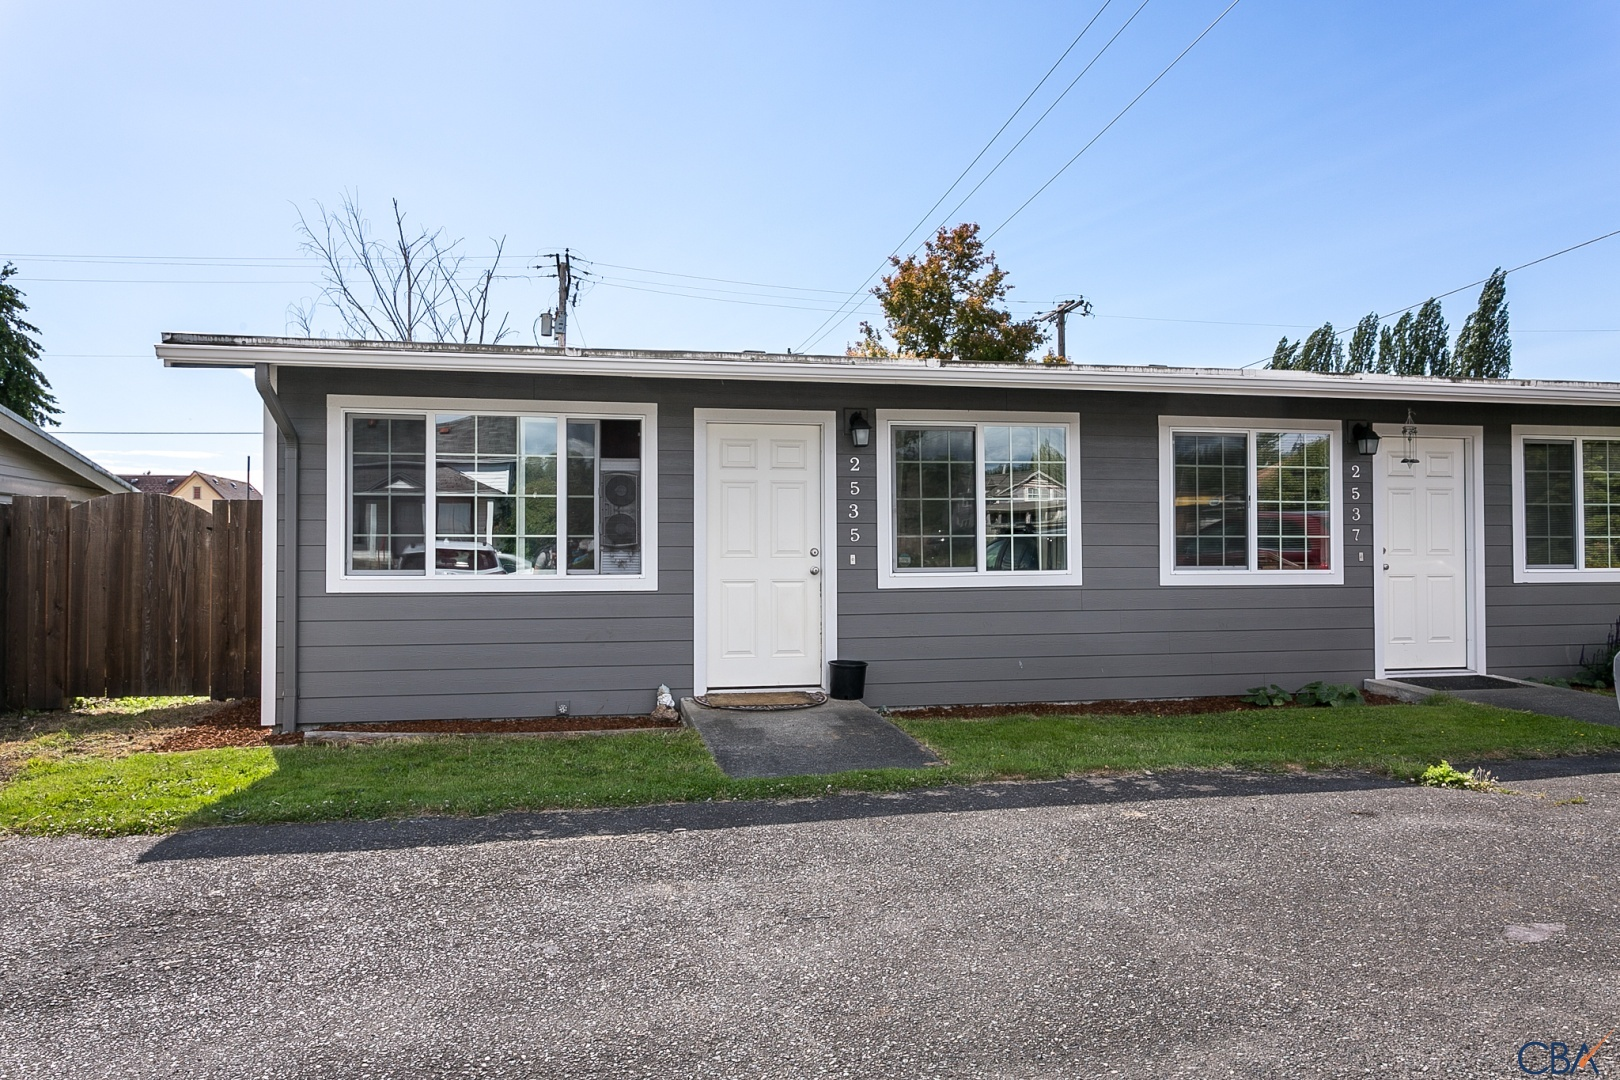 Primary Listing Image for MLS#: 627132